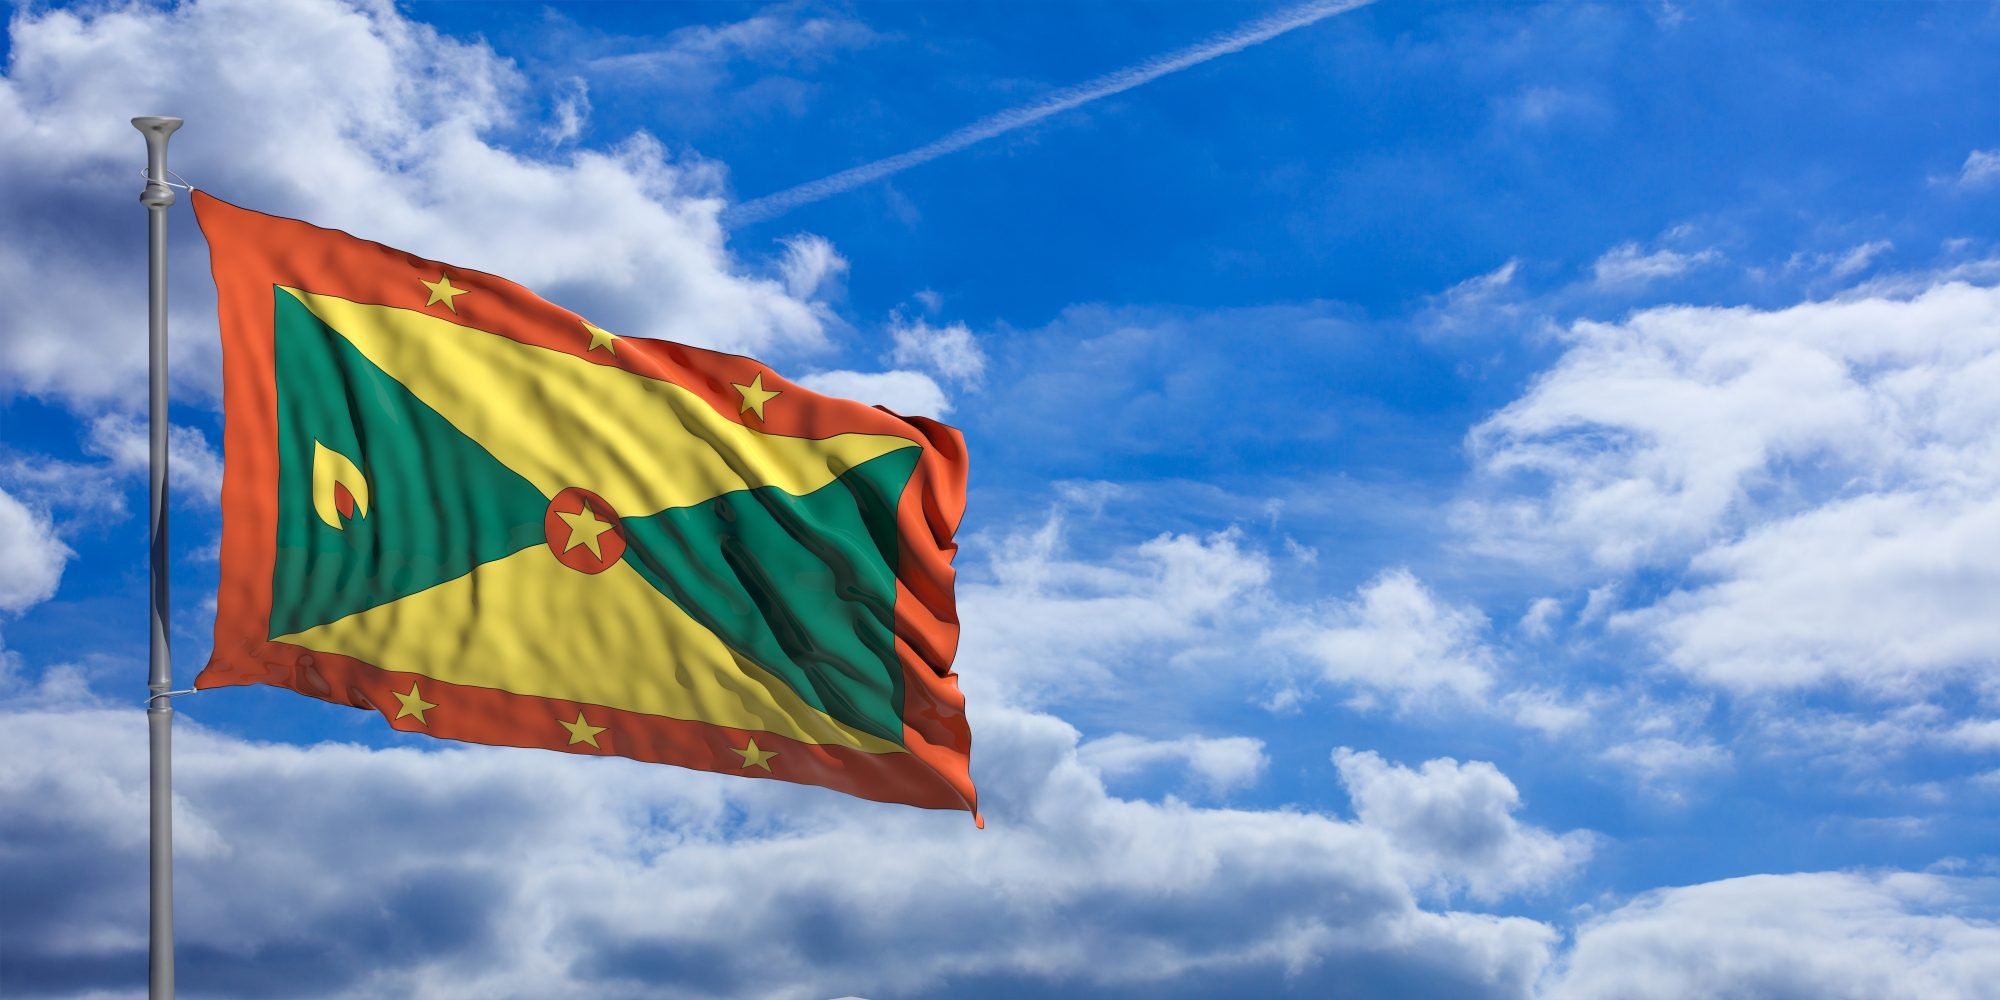 Grenada Reduces the Minimum Investment Requirement in its Citizenship by Investment Program